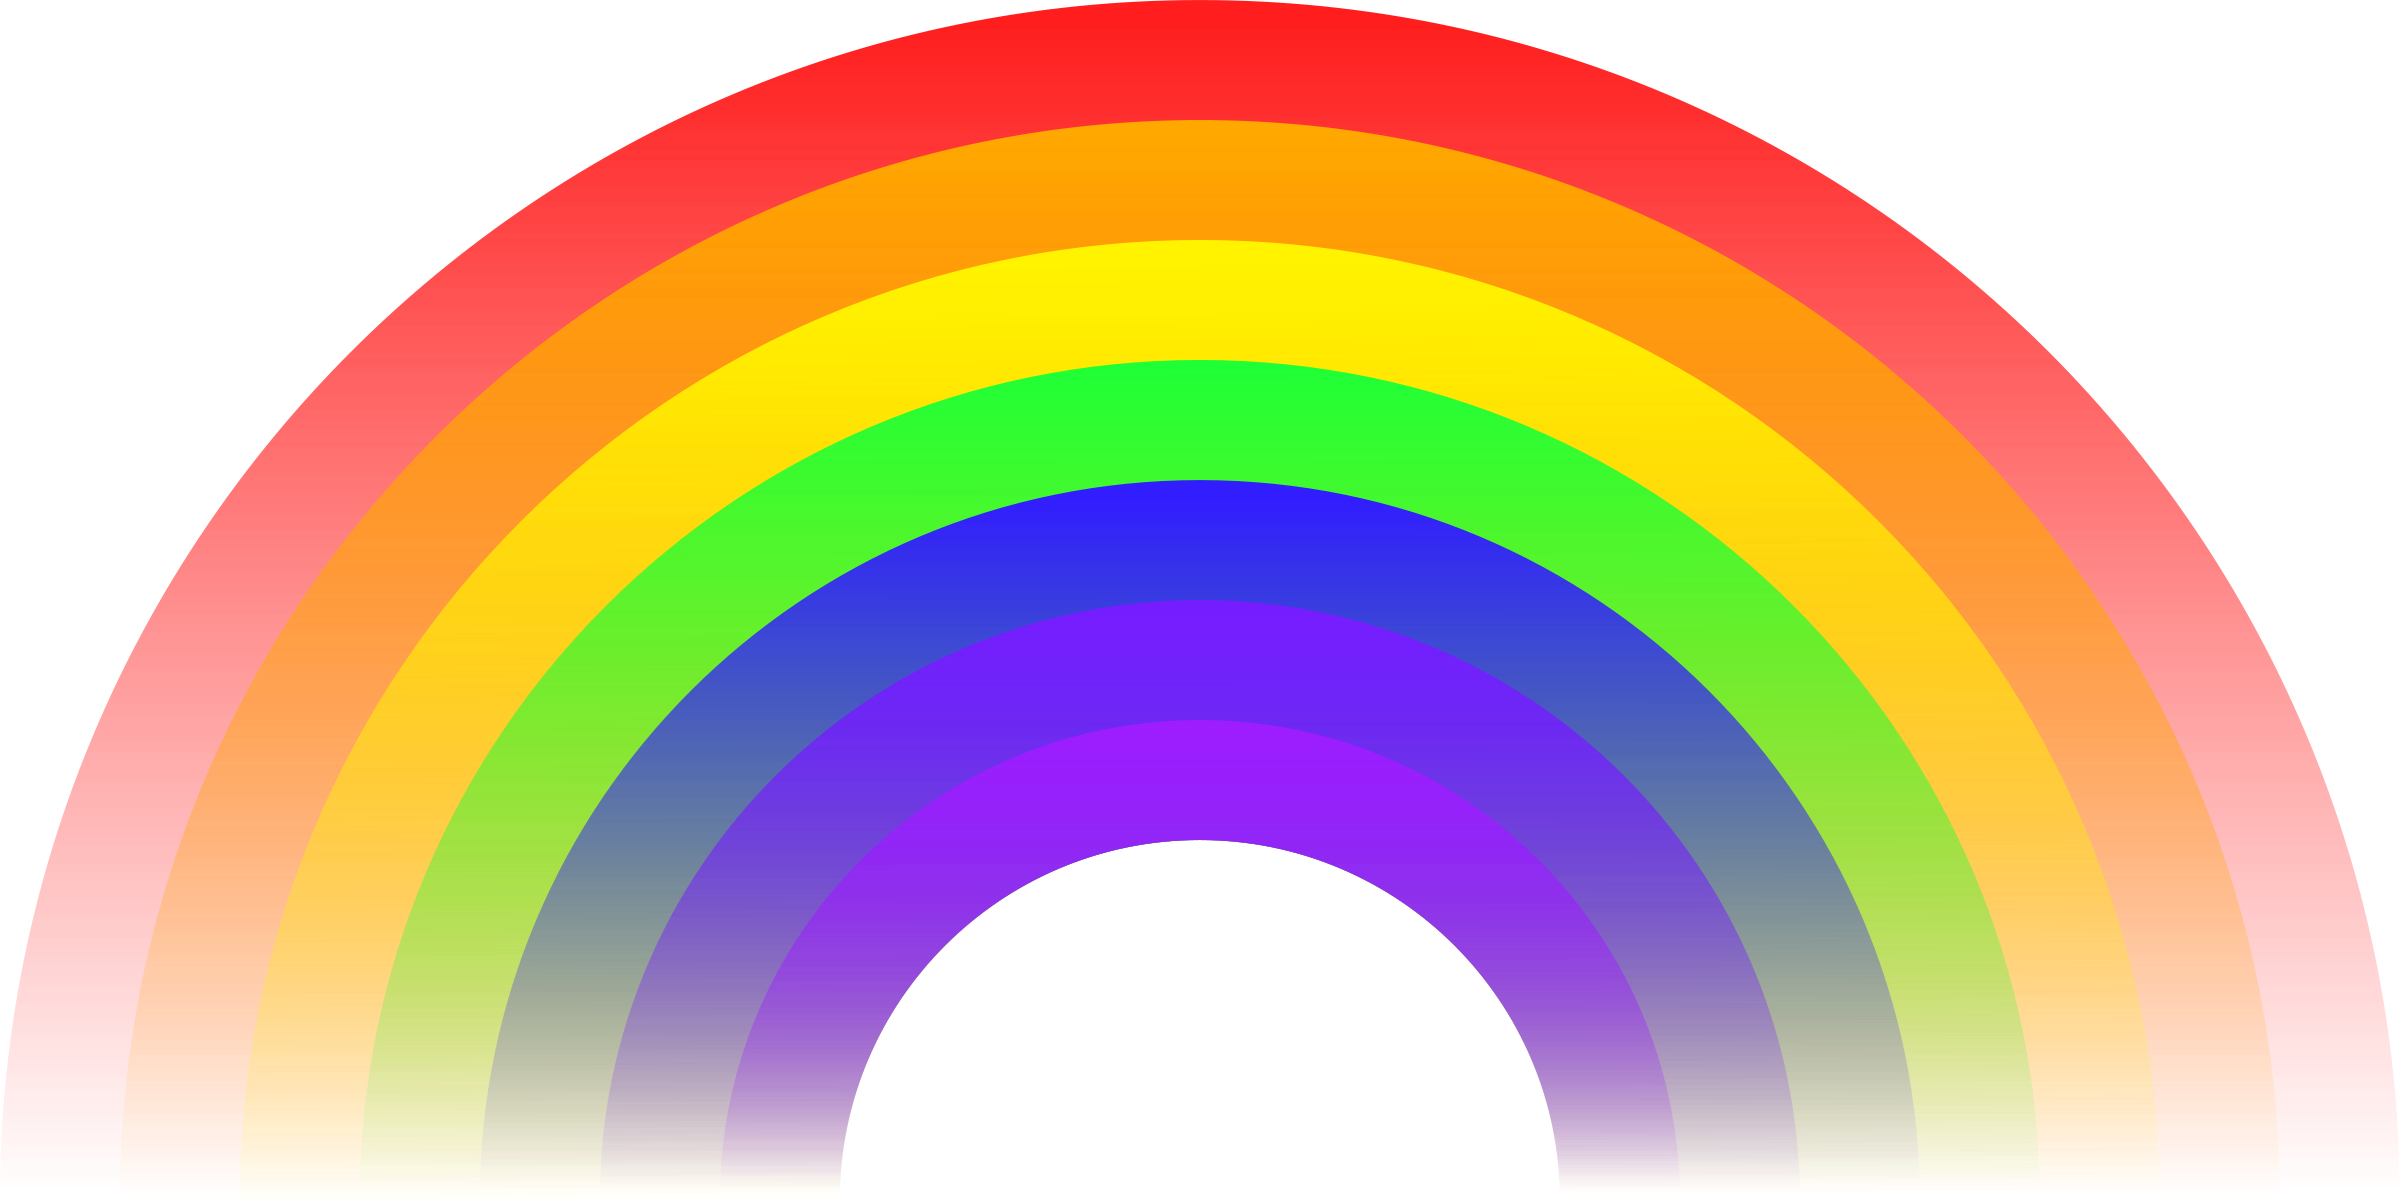 Best Free Rainbow Png Image image #7015